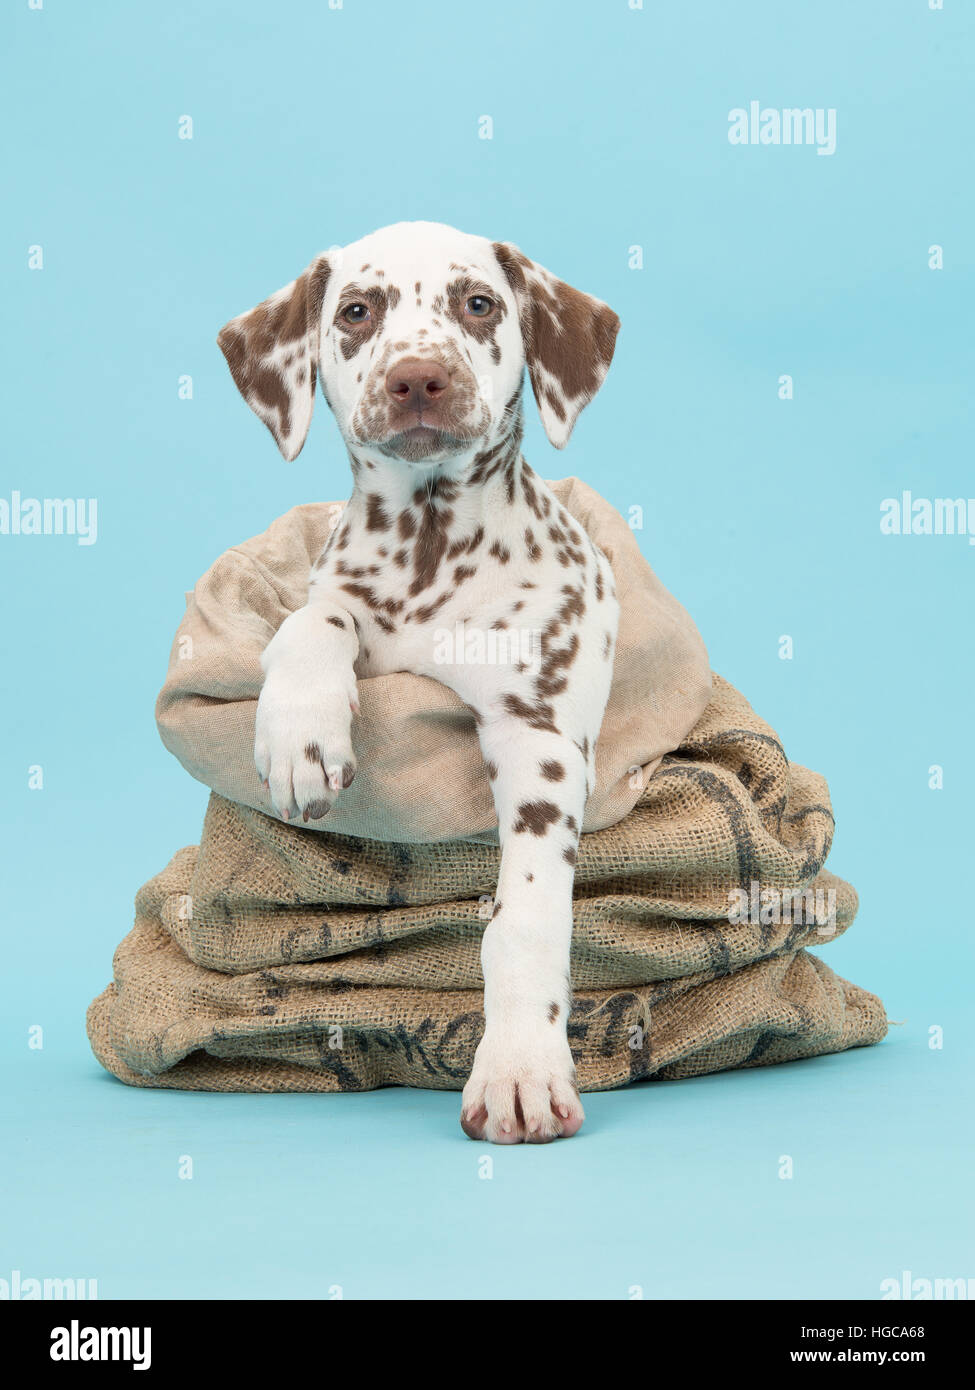 Cute brown and white dalmatian puppy facing the camera in a burlap sack on a blue background - Stock Image